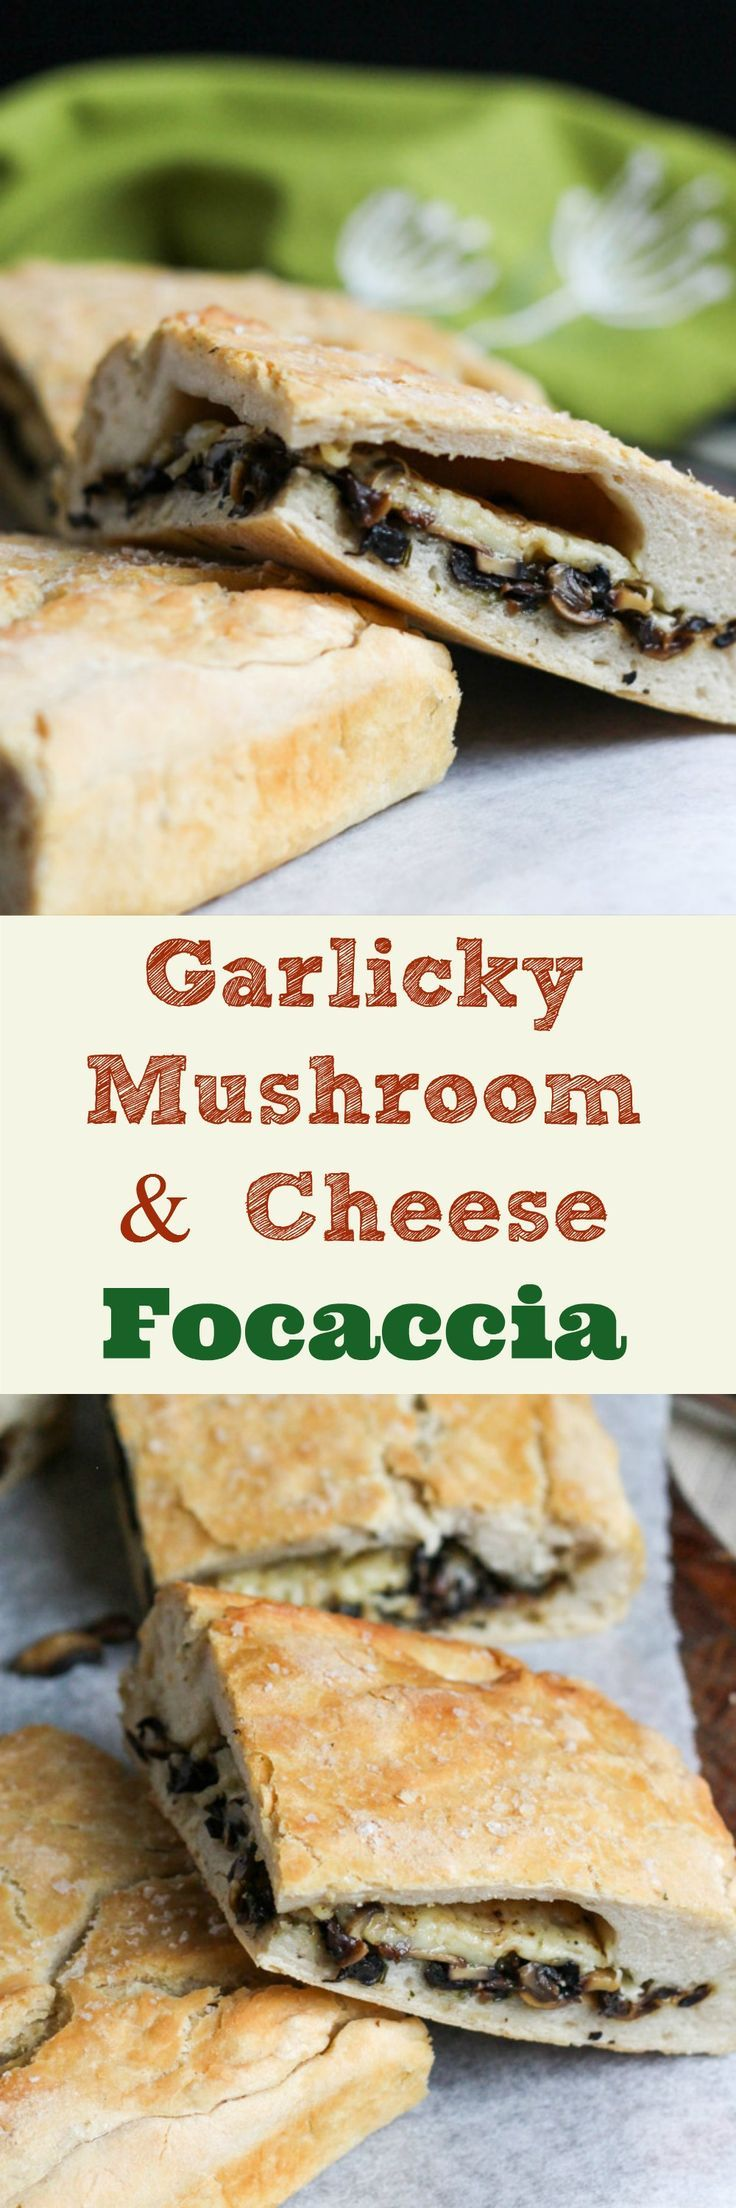 Stuffed Garlicky Mushroom & Cheese Focaccia. An easy vegetarian lunch that freezes well. The versatile mushroom filling can also be used in other dishes.